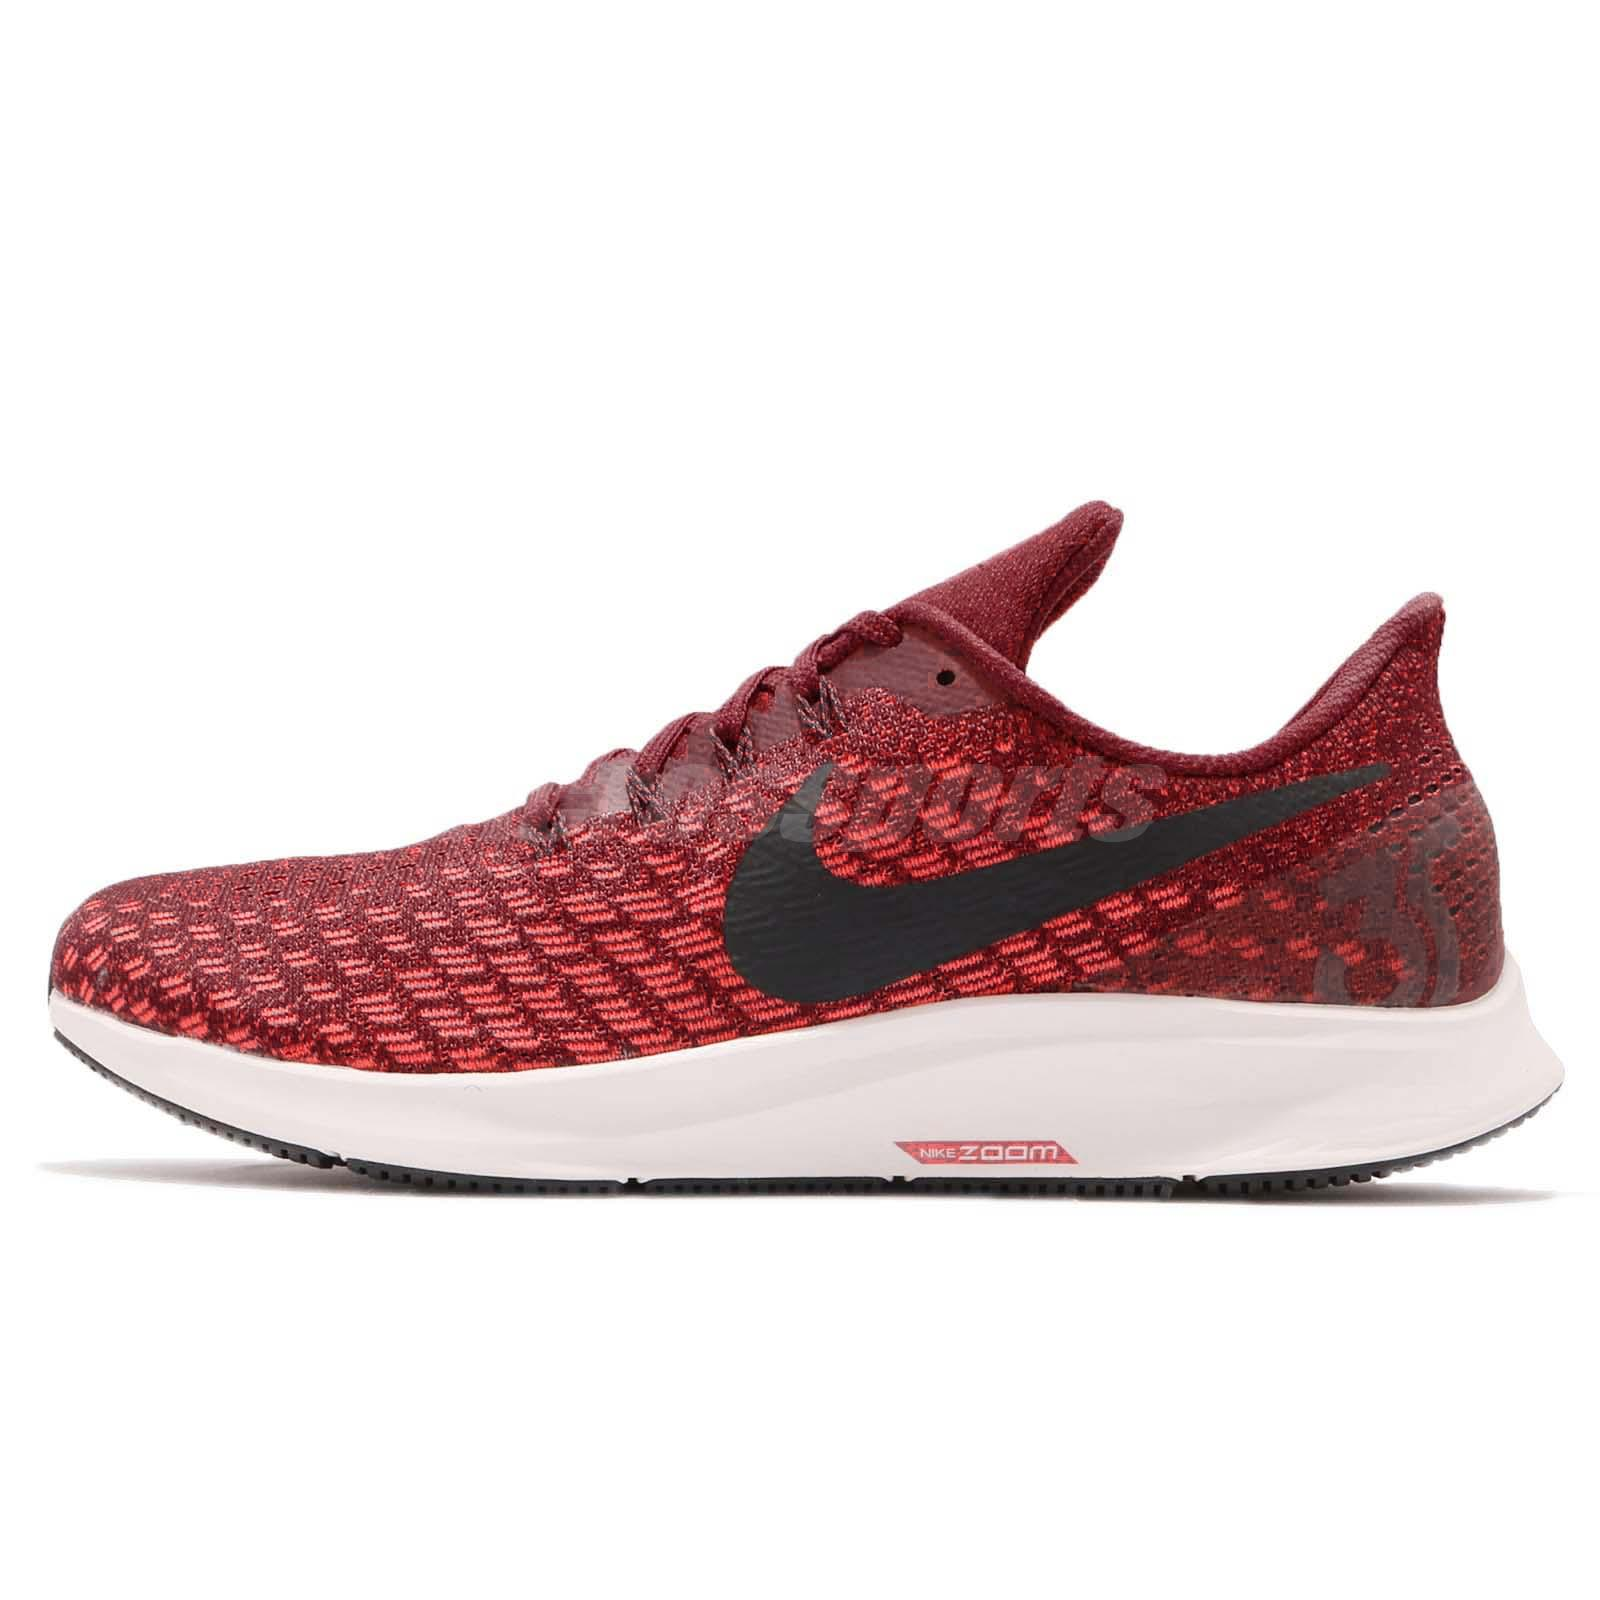 official photos 61b53 1f9e9 Nike Air Zoom Pegasus 35 Red White Black Men Running Shoes Sneakers 942851- 601